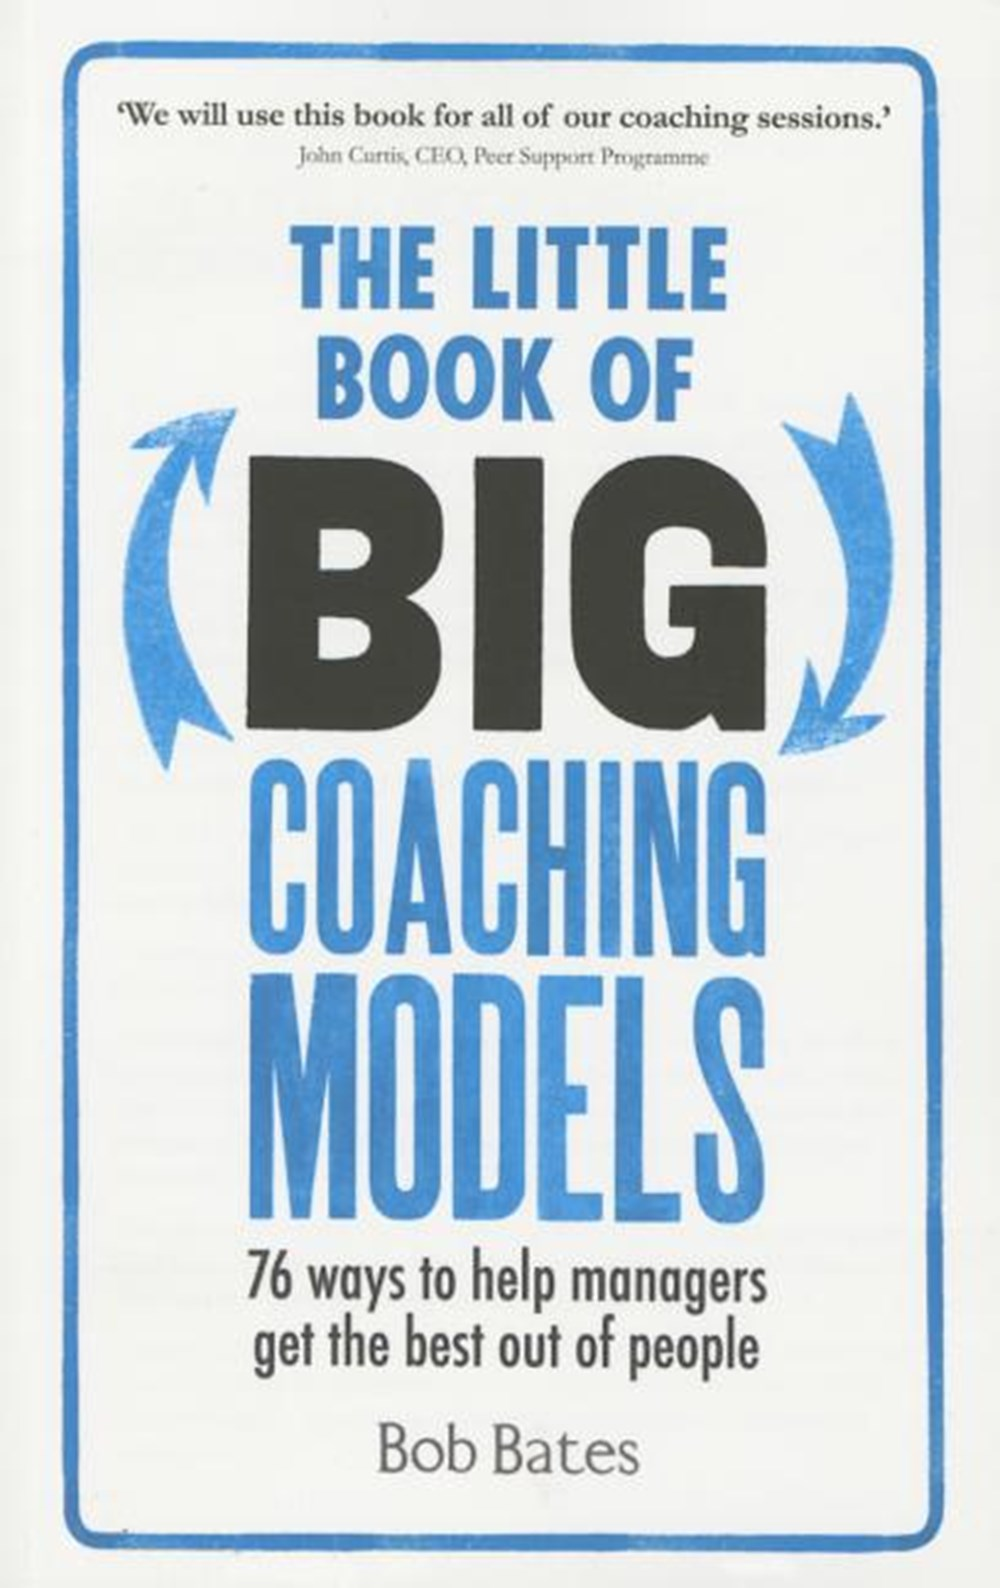 Little Book of Big Coaching Models 76 Ways to Help Managers Get the Best Out of People